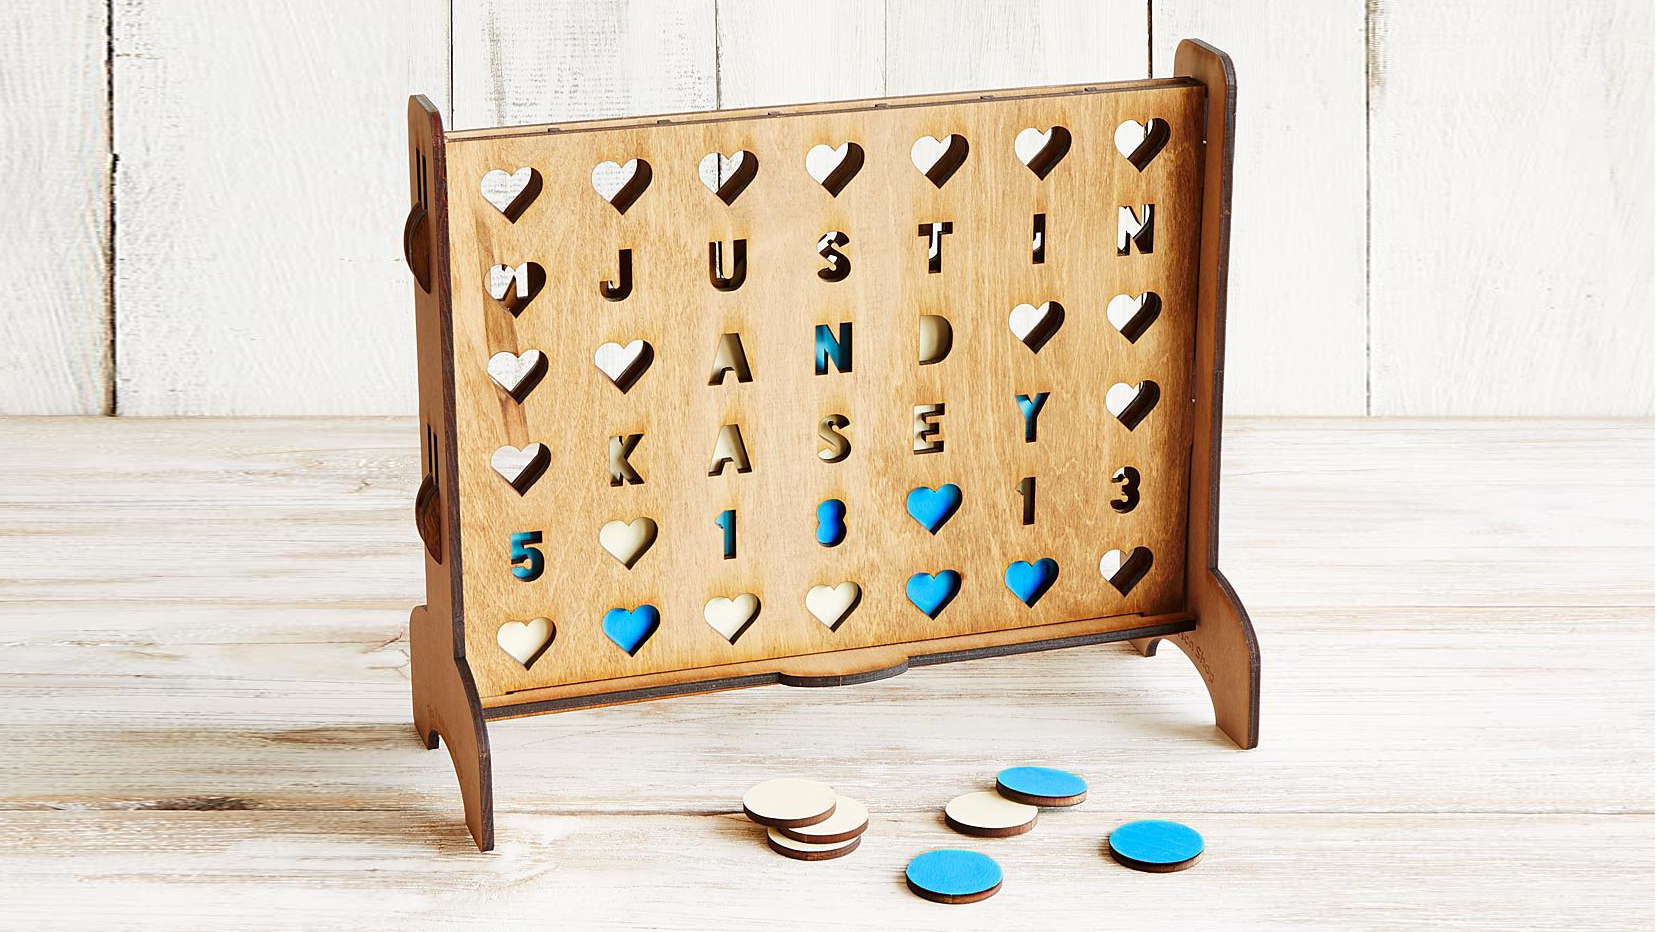 best gifts for couples, customized connect 4 game